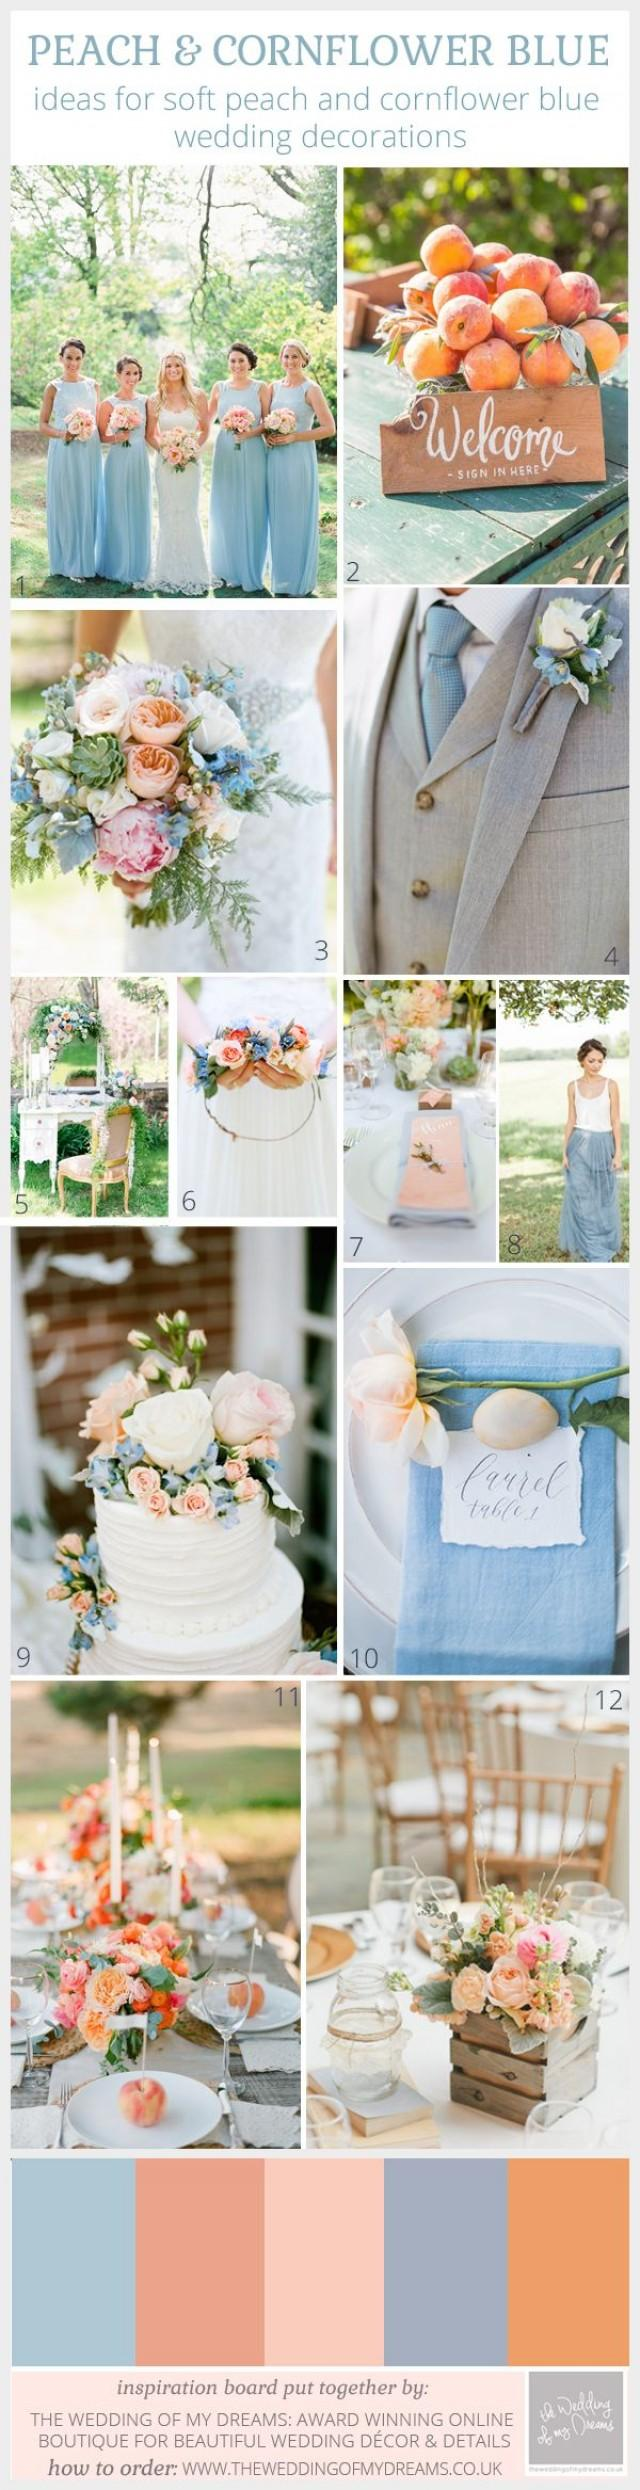 Teal And Copper Wedding Decorations  from s3.weddbook.me